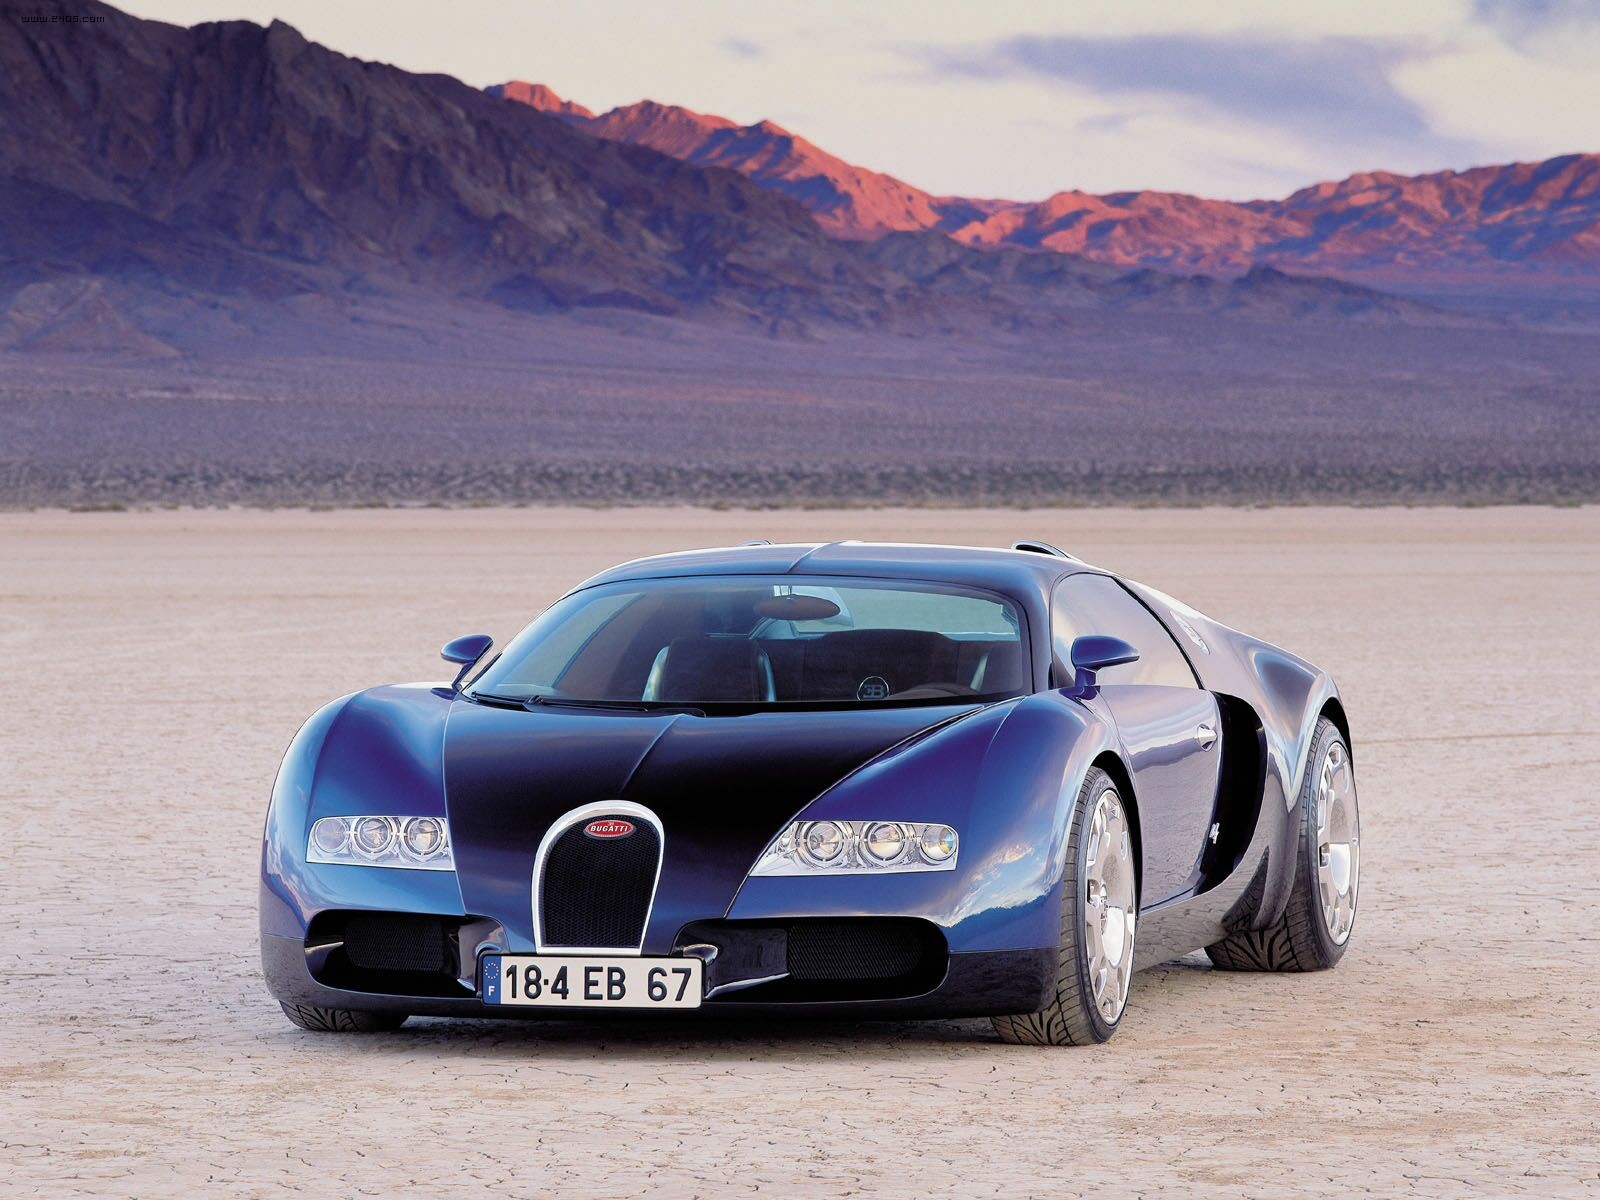 Bugatti%2520Veyron%2520Wallpapers%2520(3) Fascinating Gran Turismo Psp Bugatti Veyron Price Cars Trend